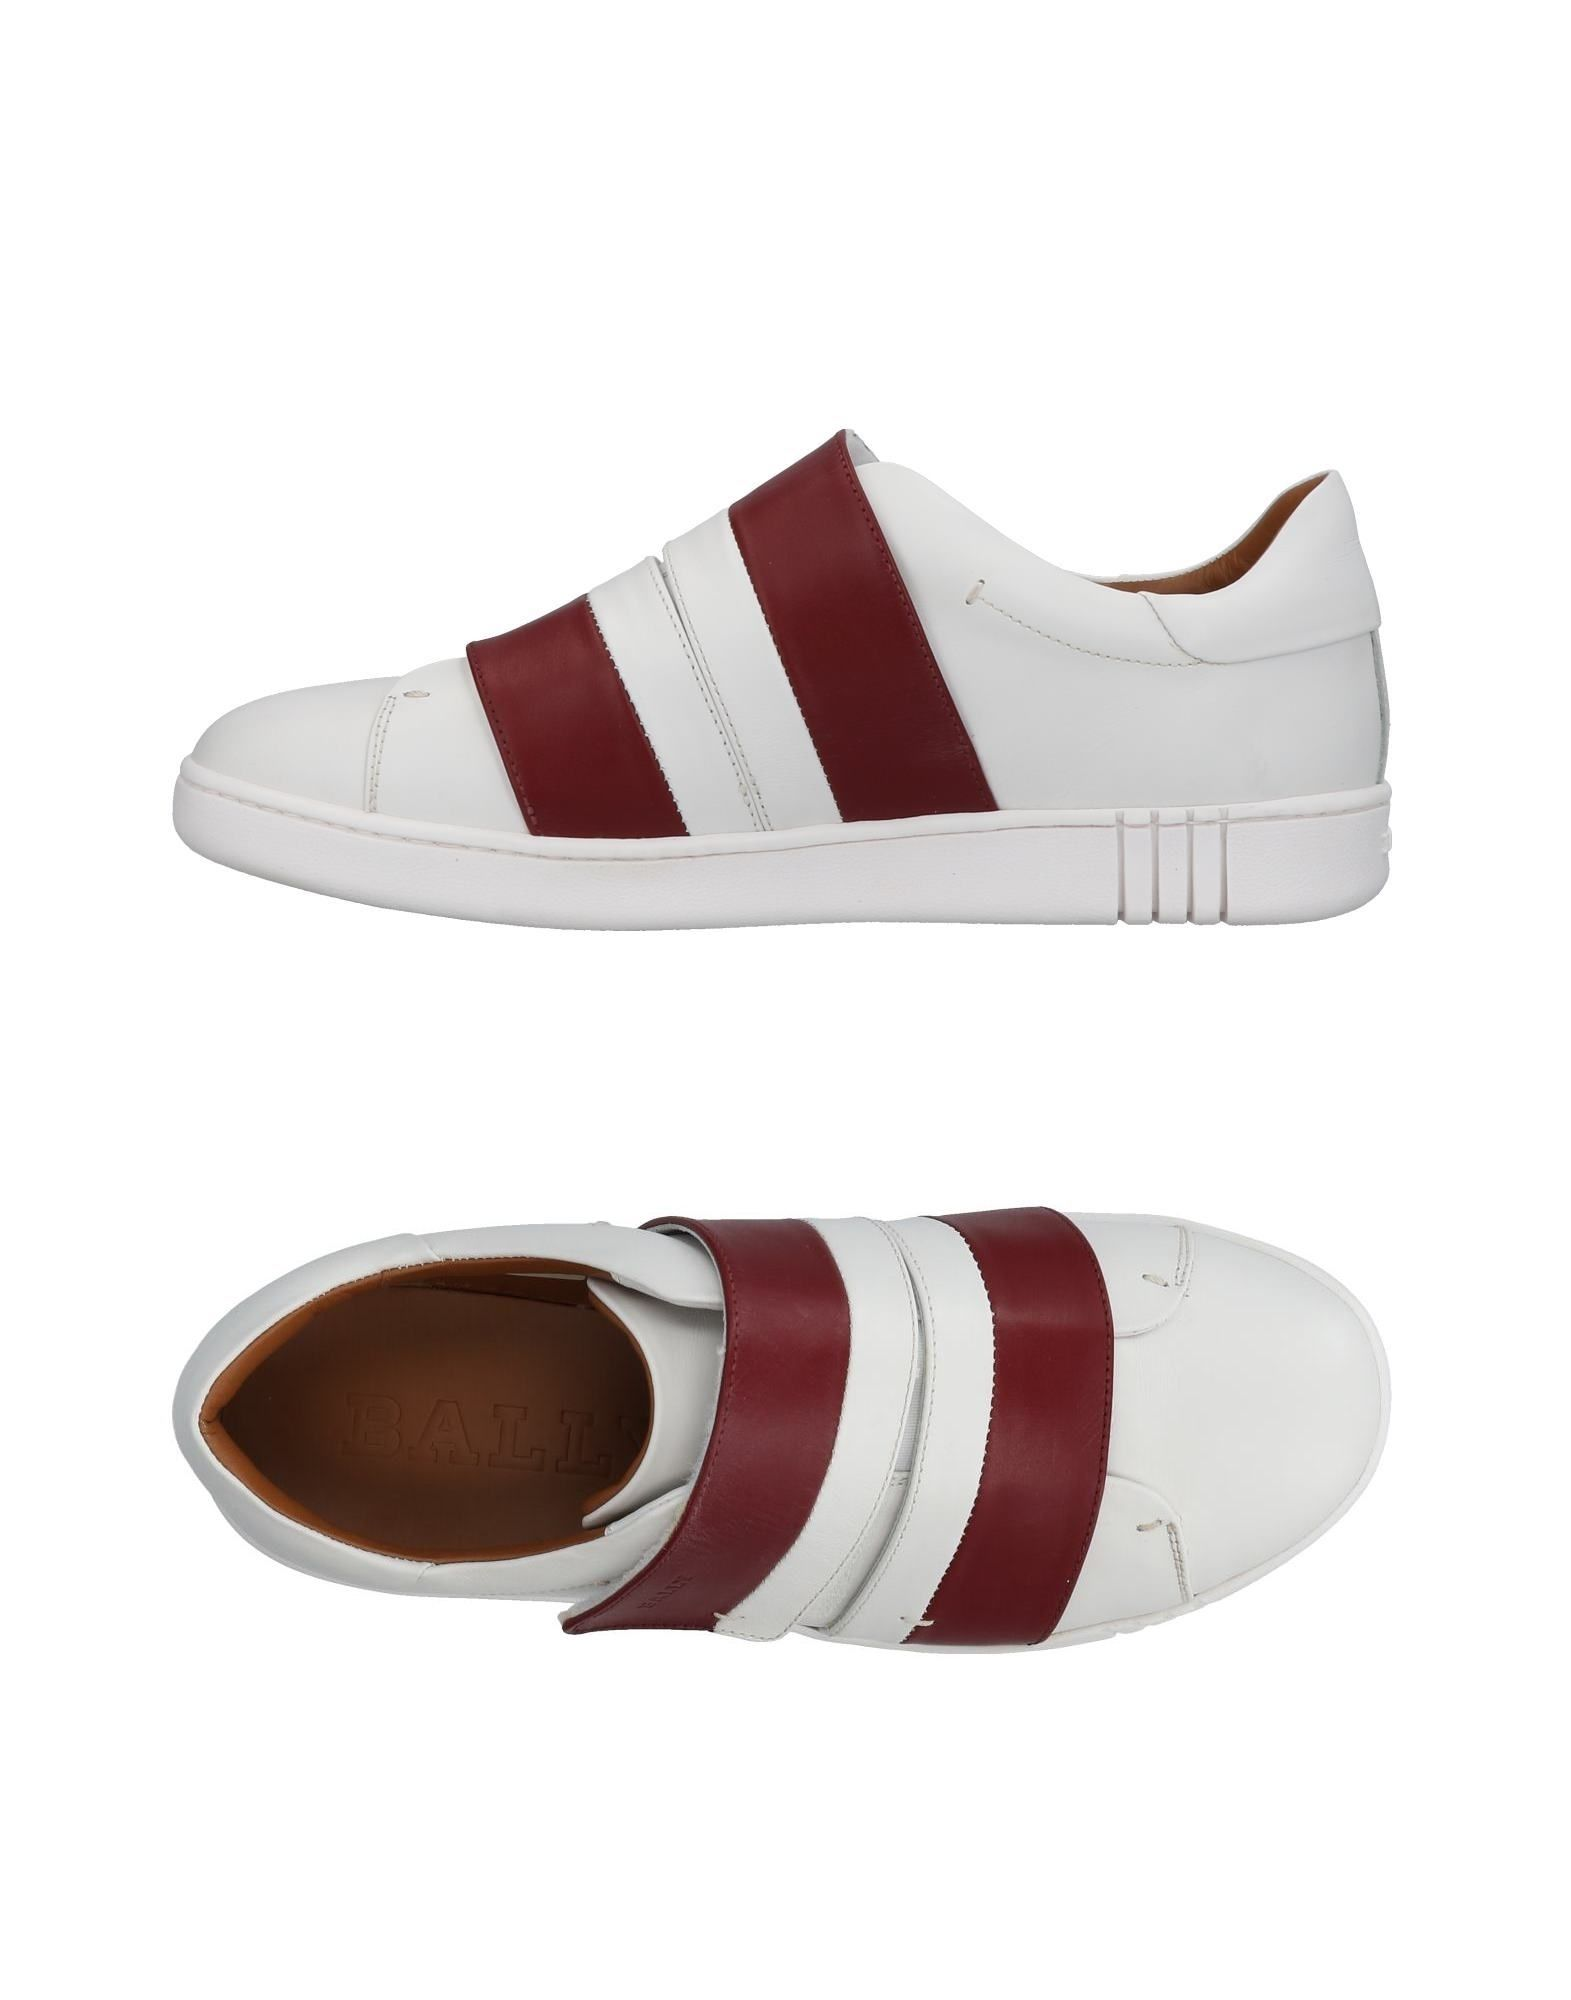 SOLD OUT         Sneakers Bally Uomo - Acquista online su